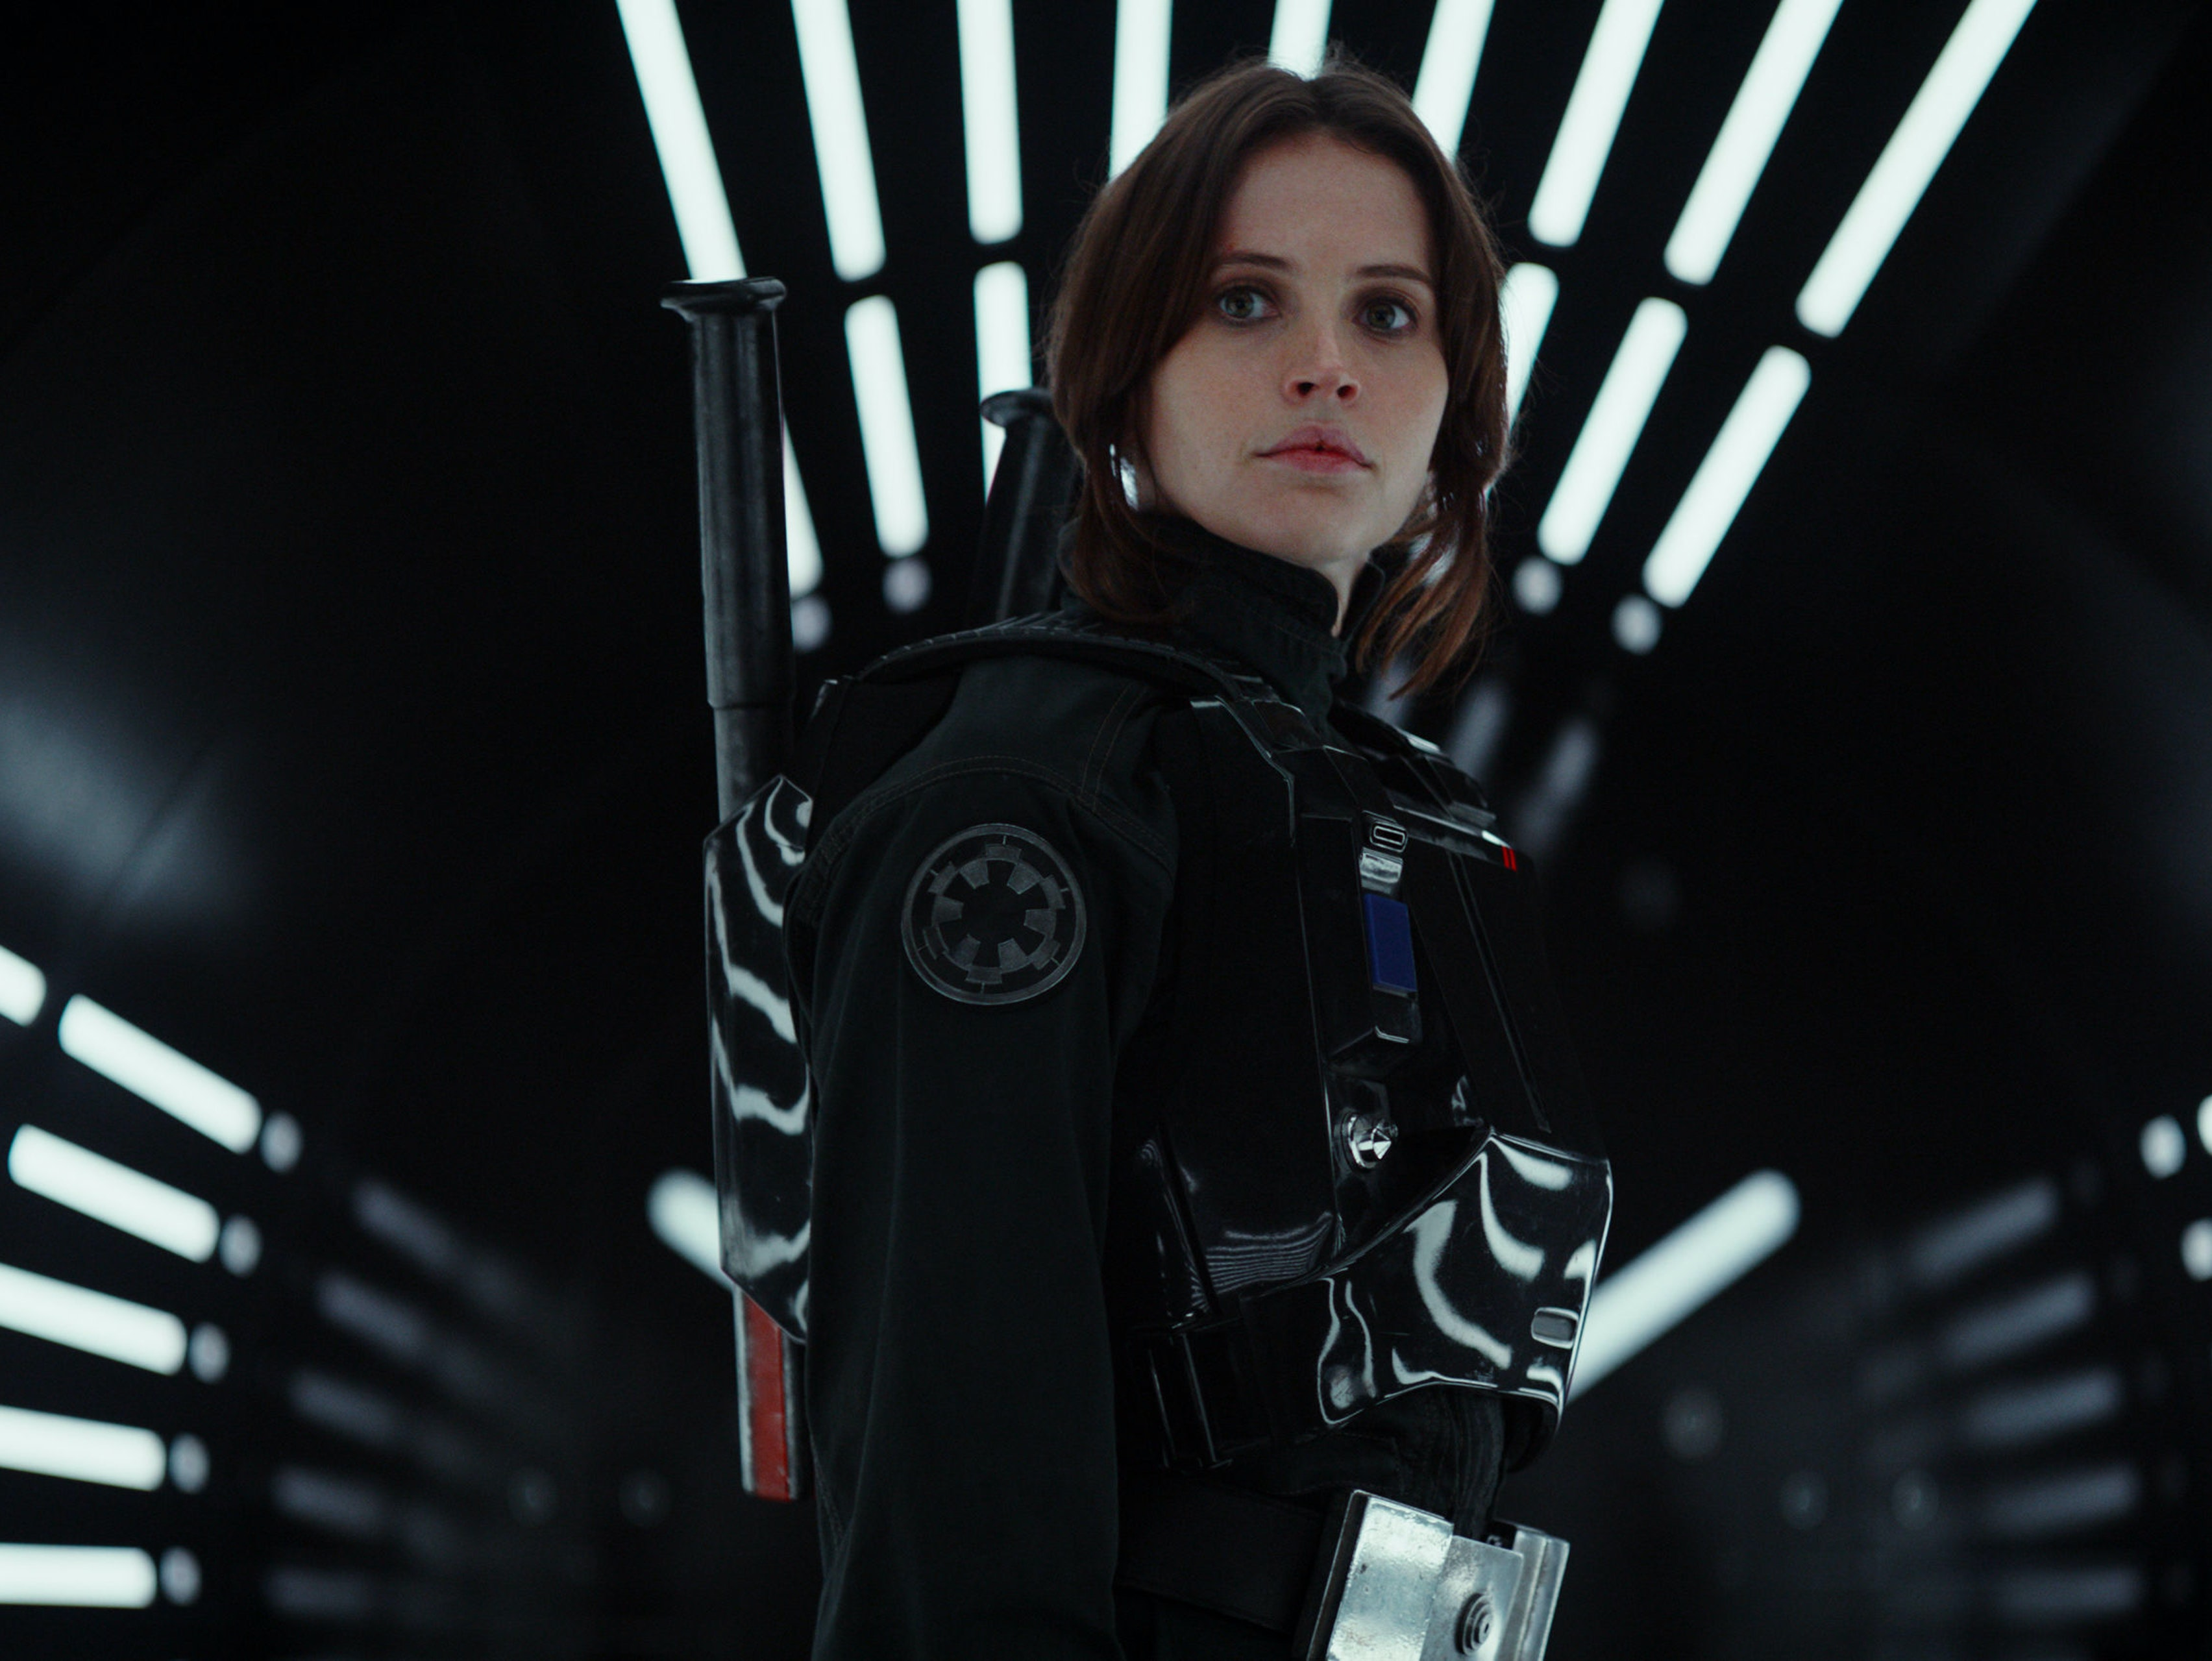 'Rogue One' Reviews Praise the Film's Bold Direction